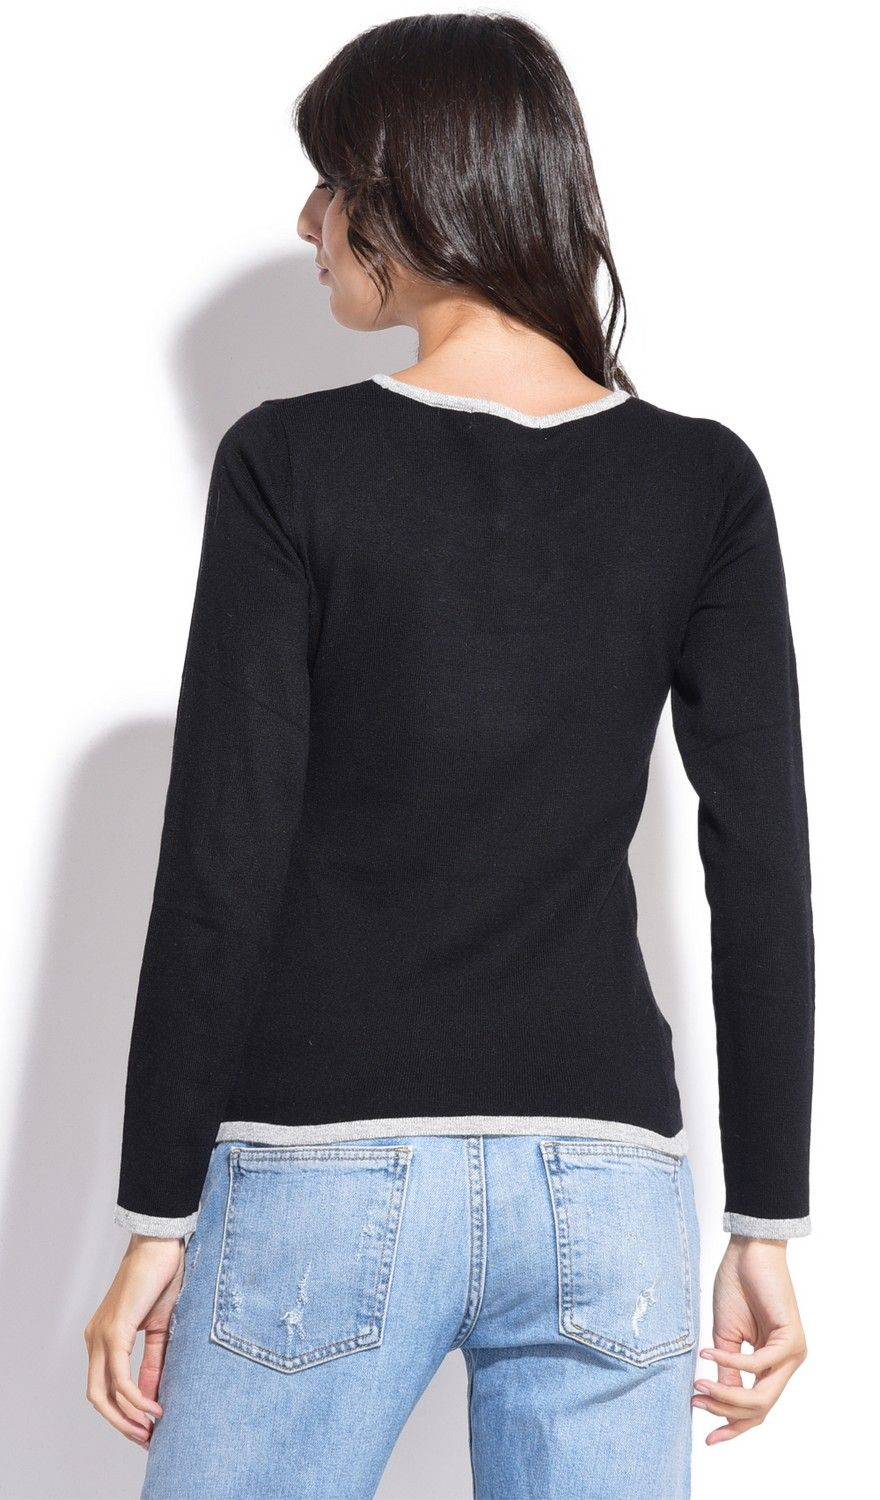 Assuili Round Neck Two-tone Butterfly Knot Sweater in Black